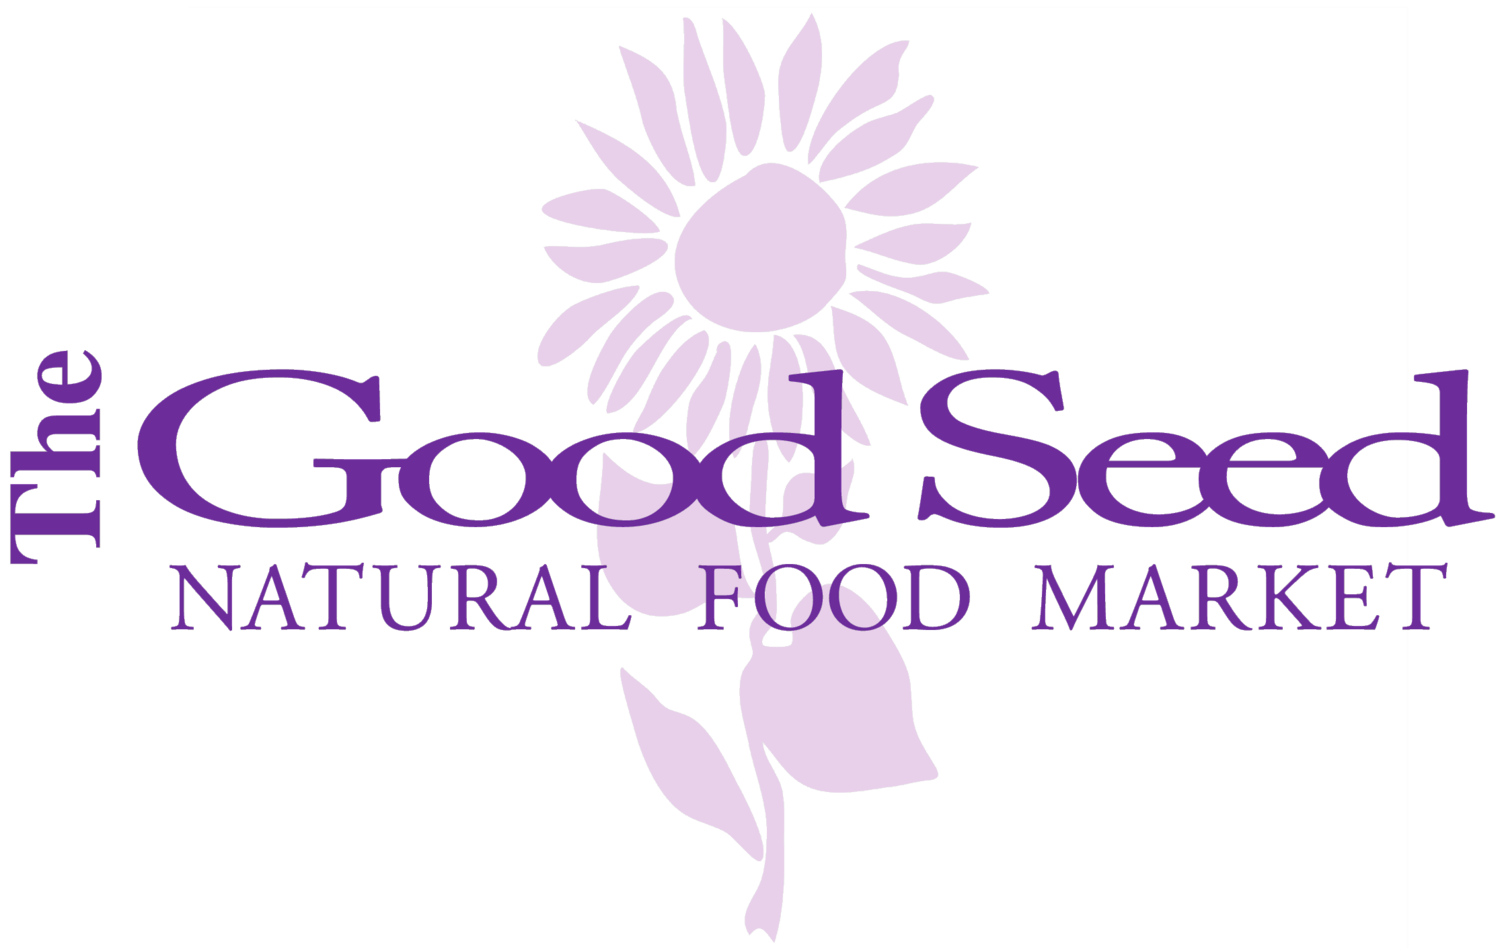 The Good Seed Market